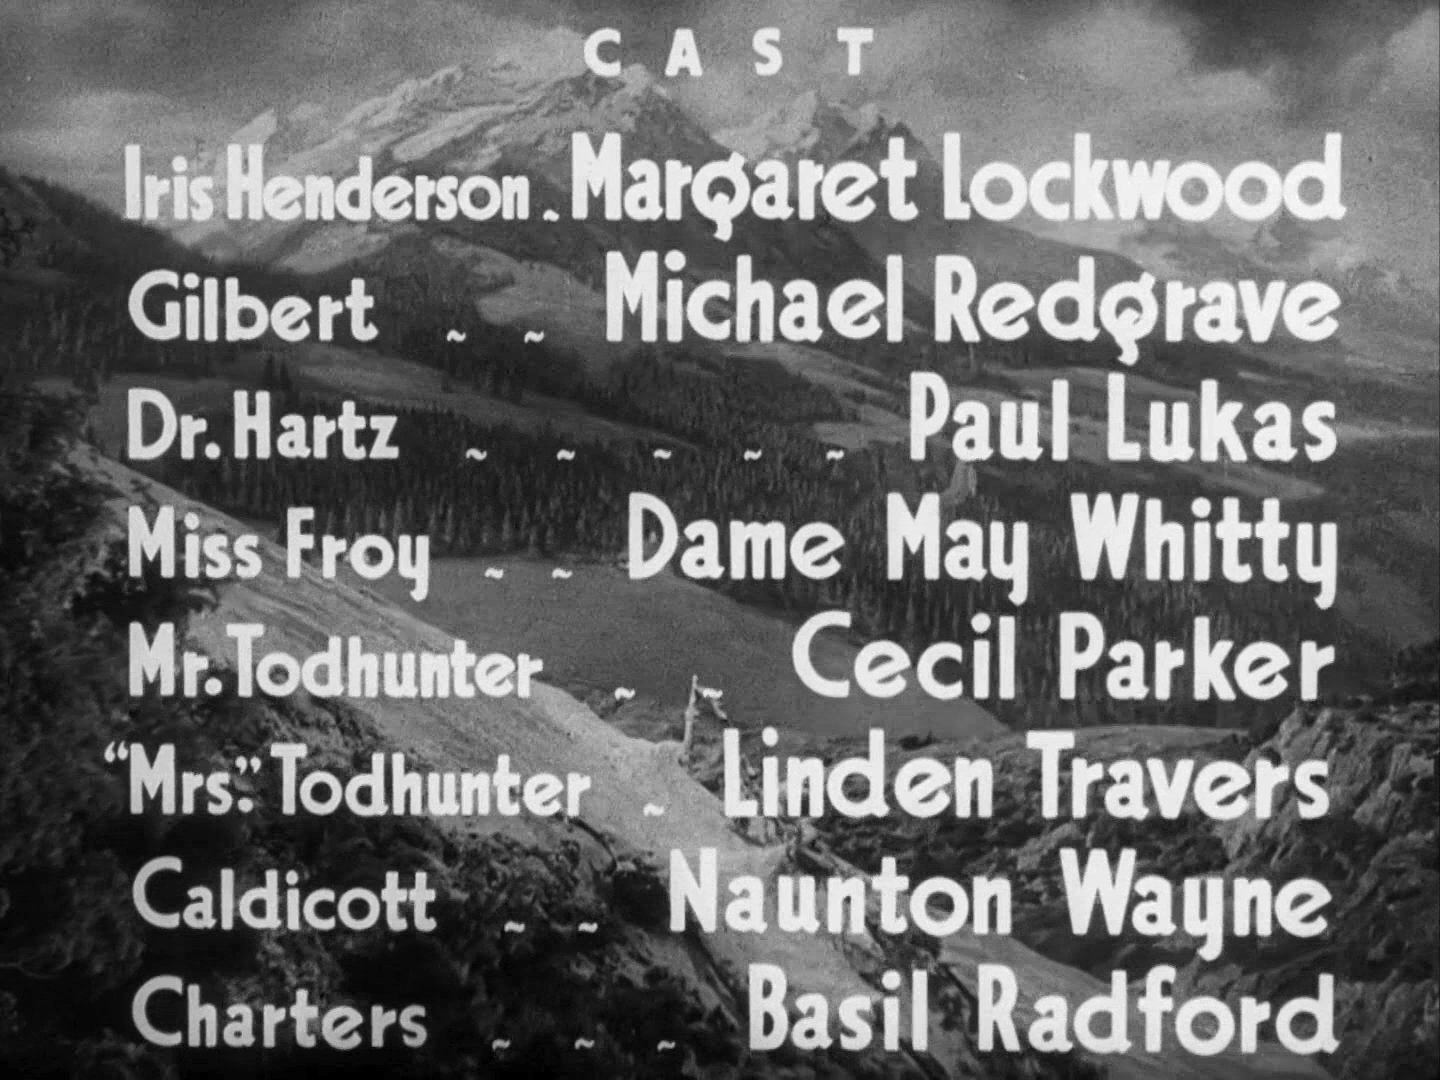 Main title from The Lady Vanishes (1938) (6). Cast: Margaret Lockwood, Michael Redgrave, Paul Lukas, Dame May Whitty, Cecil Parker, Linden Travers